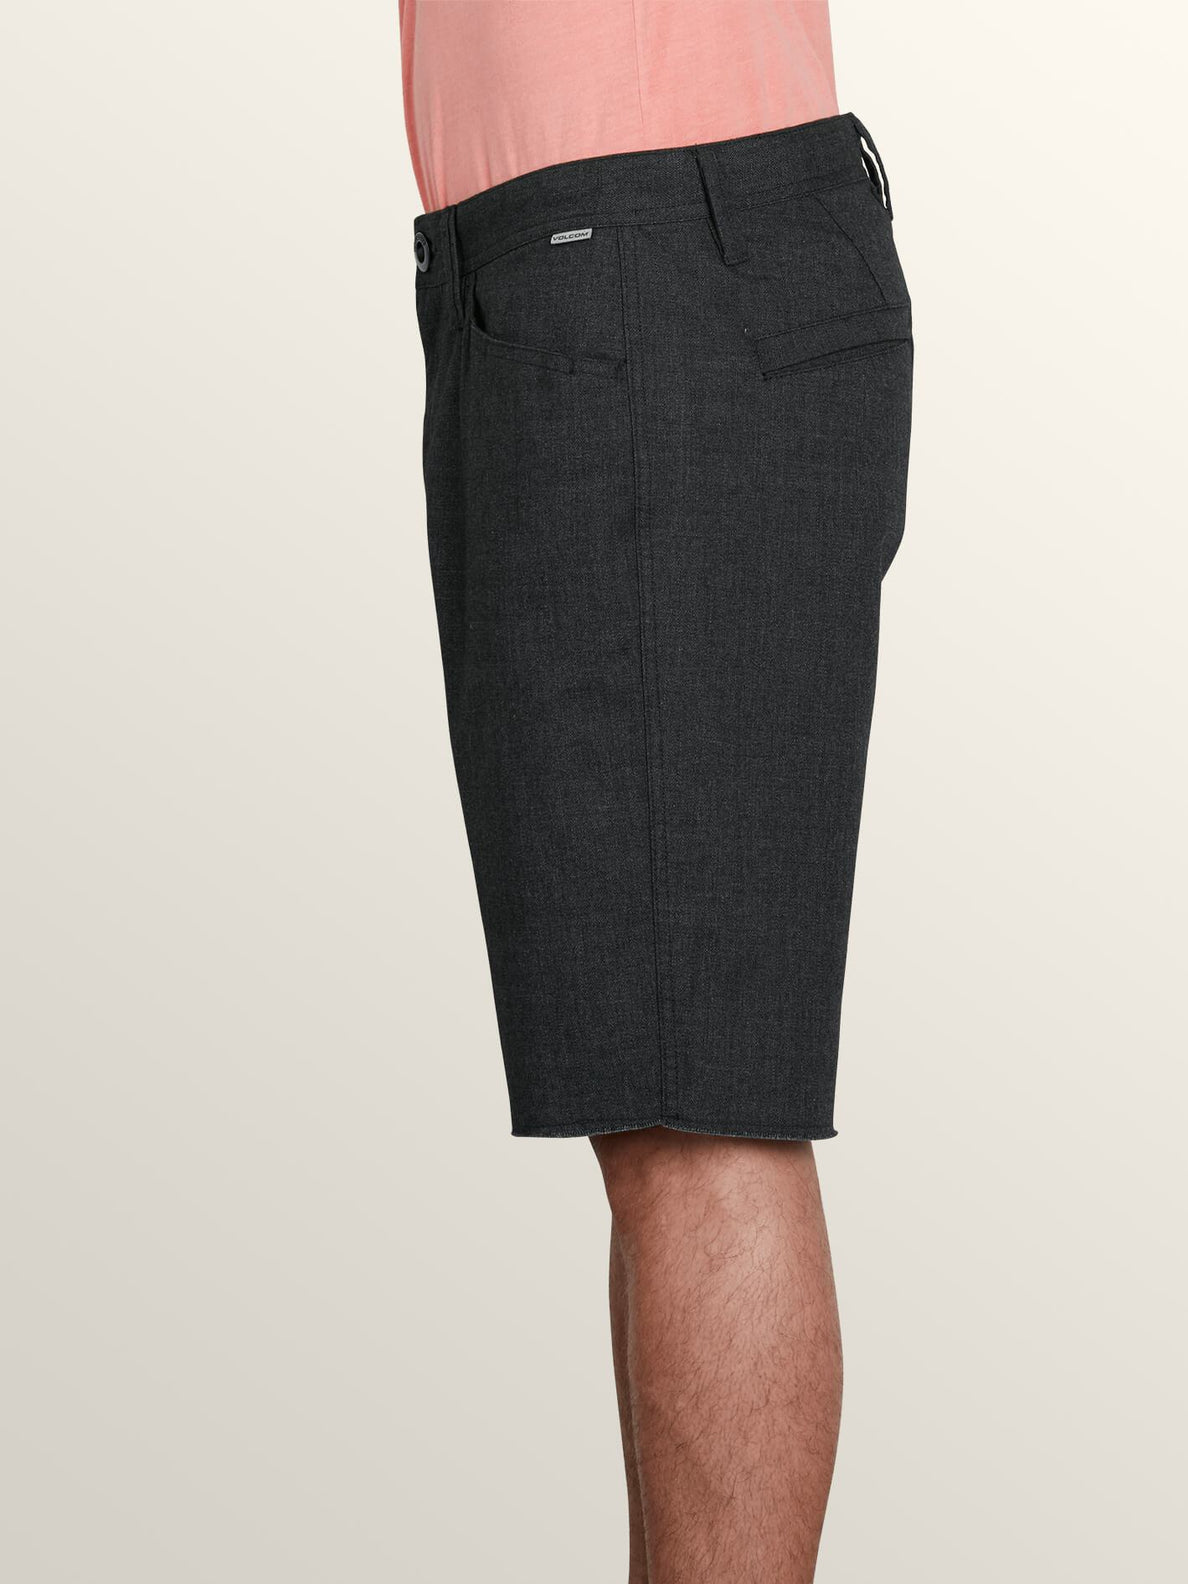 Gritter Thrifter Shorts In Gunmetal Grey, Alternate View